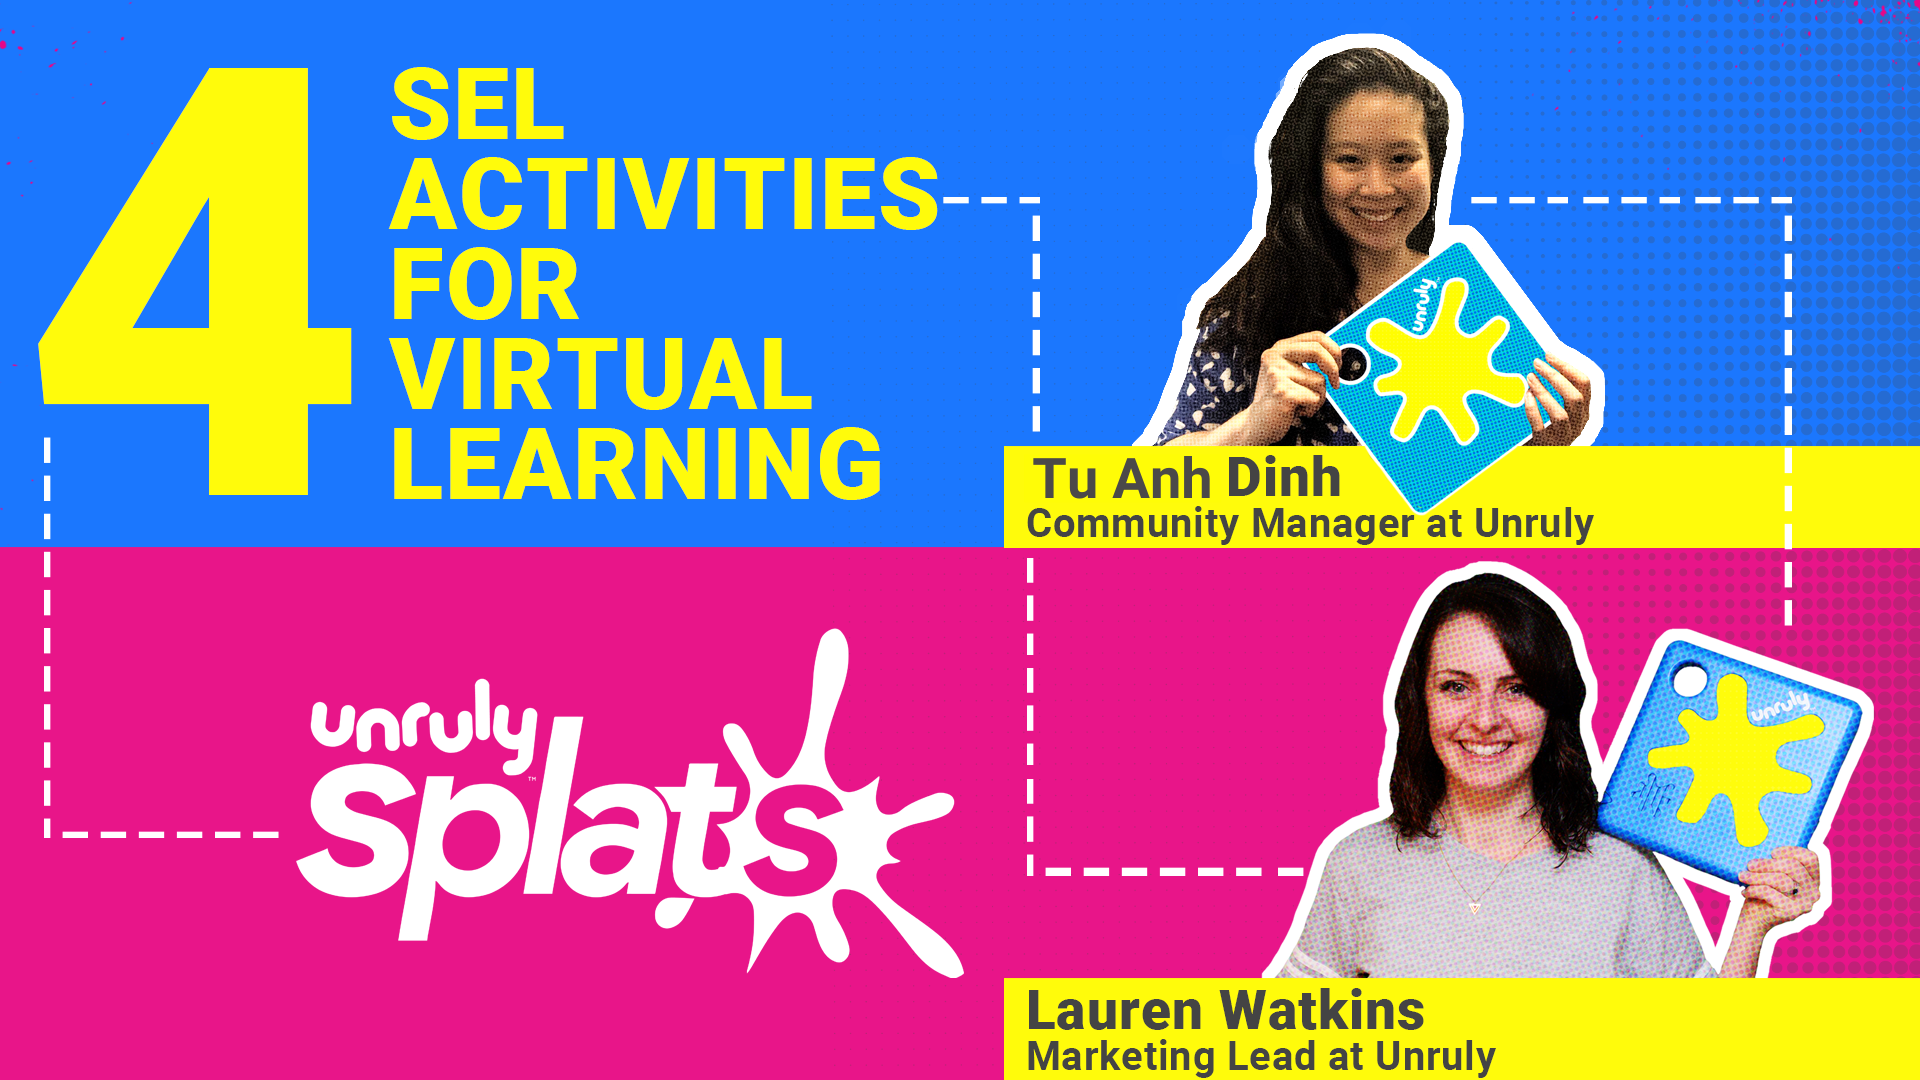 SEL Activities for Virtual Learning